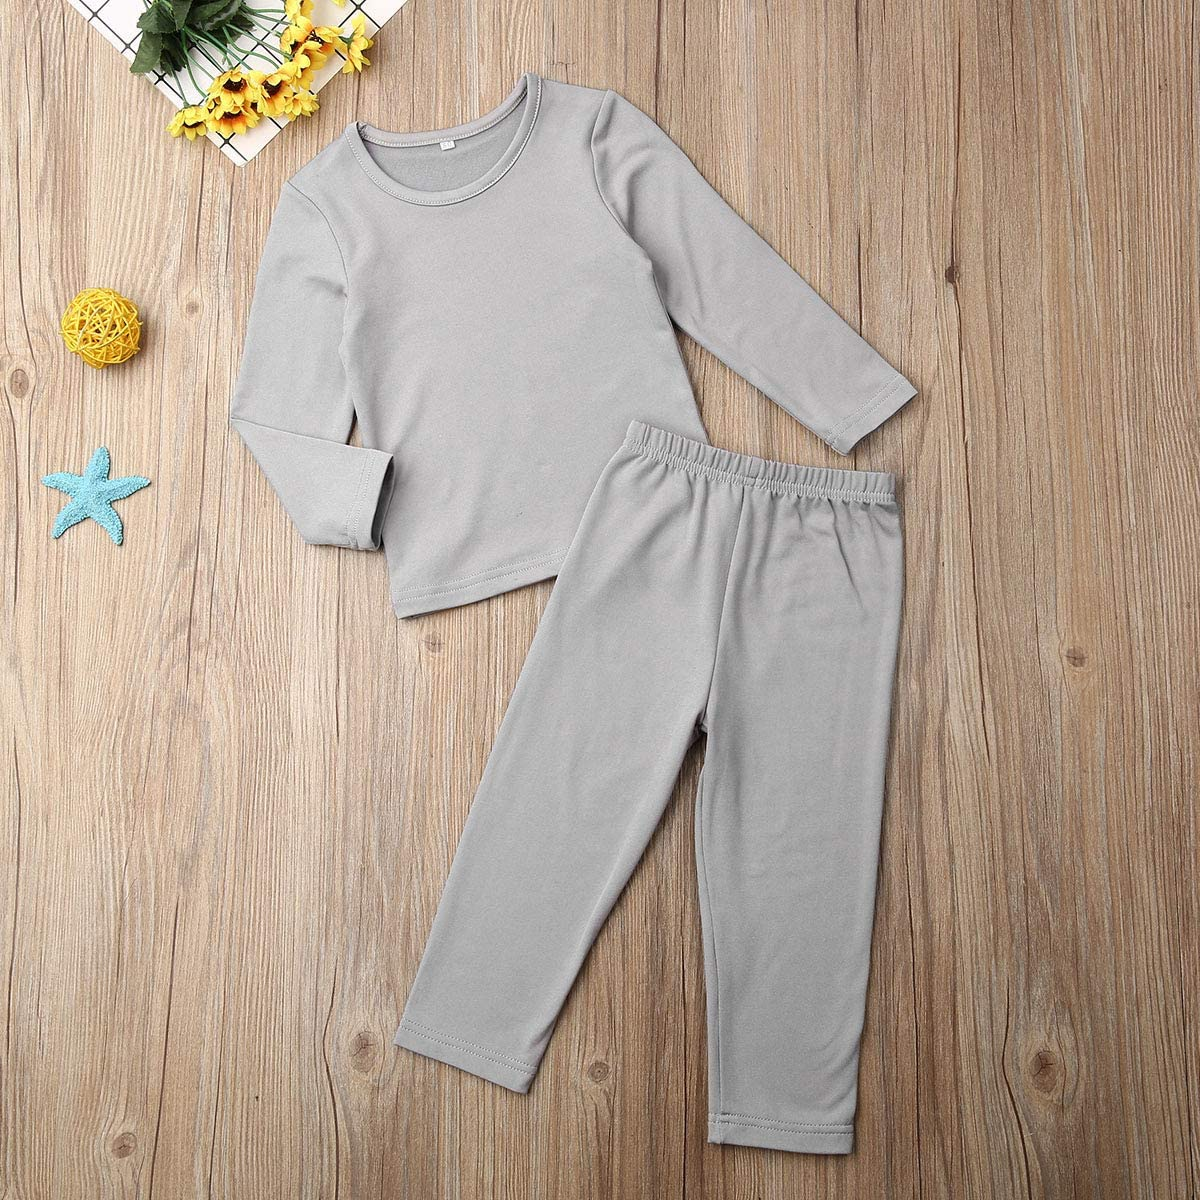 Toddler Baby Boy Girl Sleepwear Solid Color Organic Cotton Pajamas Long Sleeve Homewear Nightwear Outfits